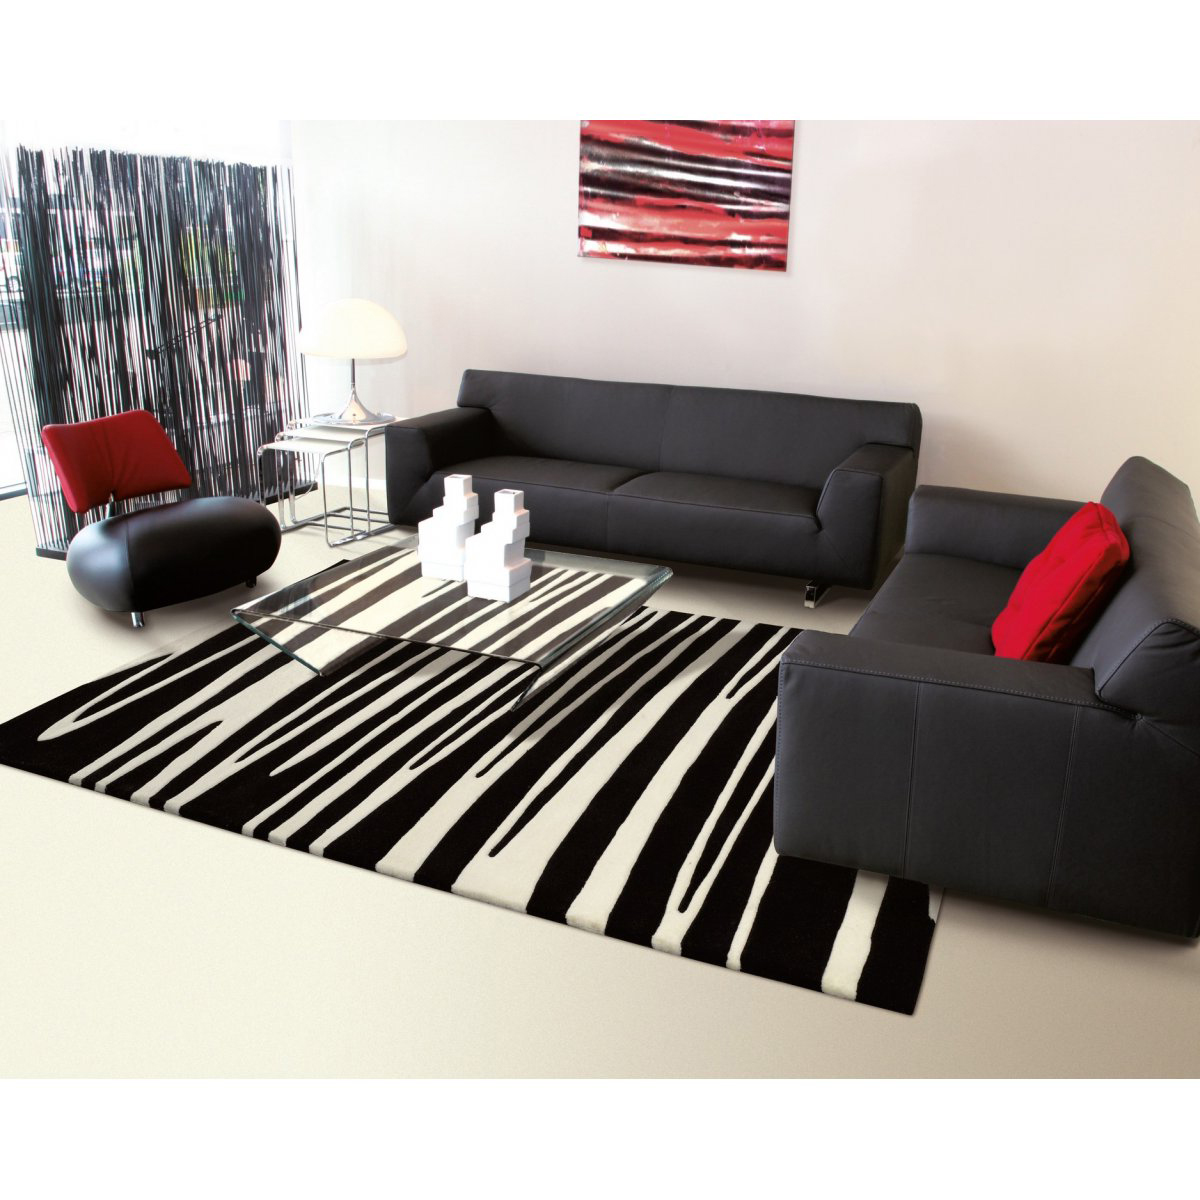 tapis design pas cher 13 id es de d coration int rieure french decor. Black Bedroom Furniture Sets. Home Design Ideas